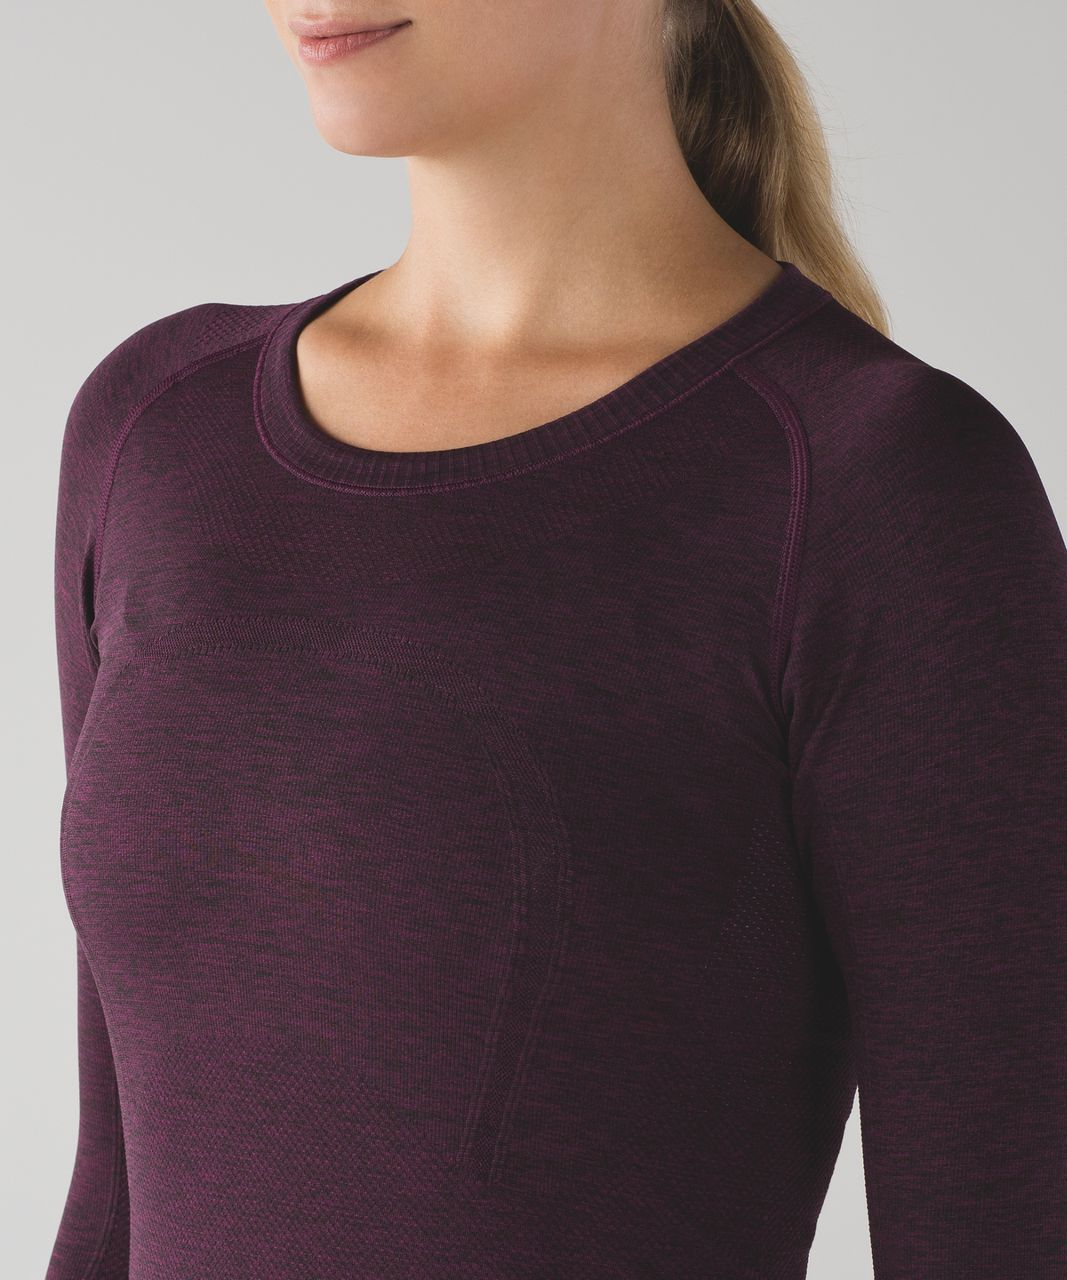 Lululemon Swiftly Tech Long Sleeve Crew - Plum / Black